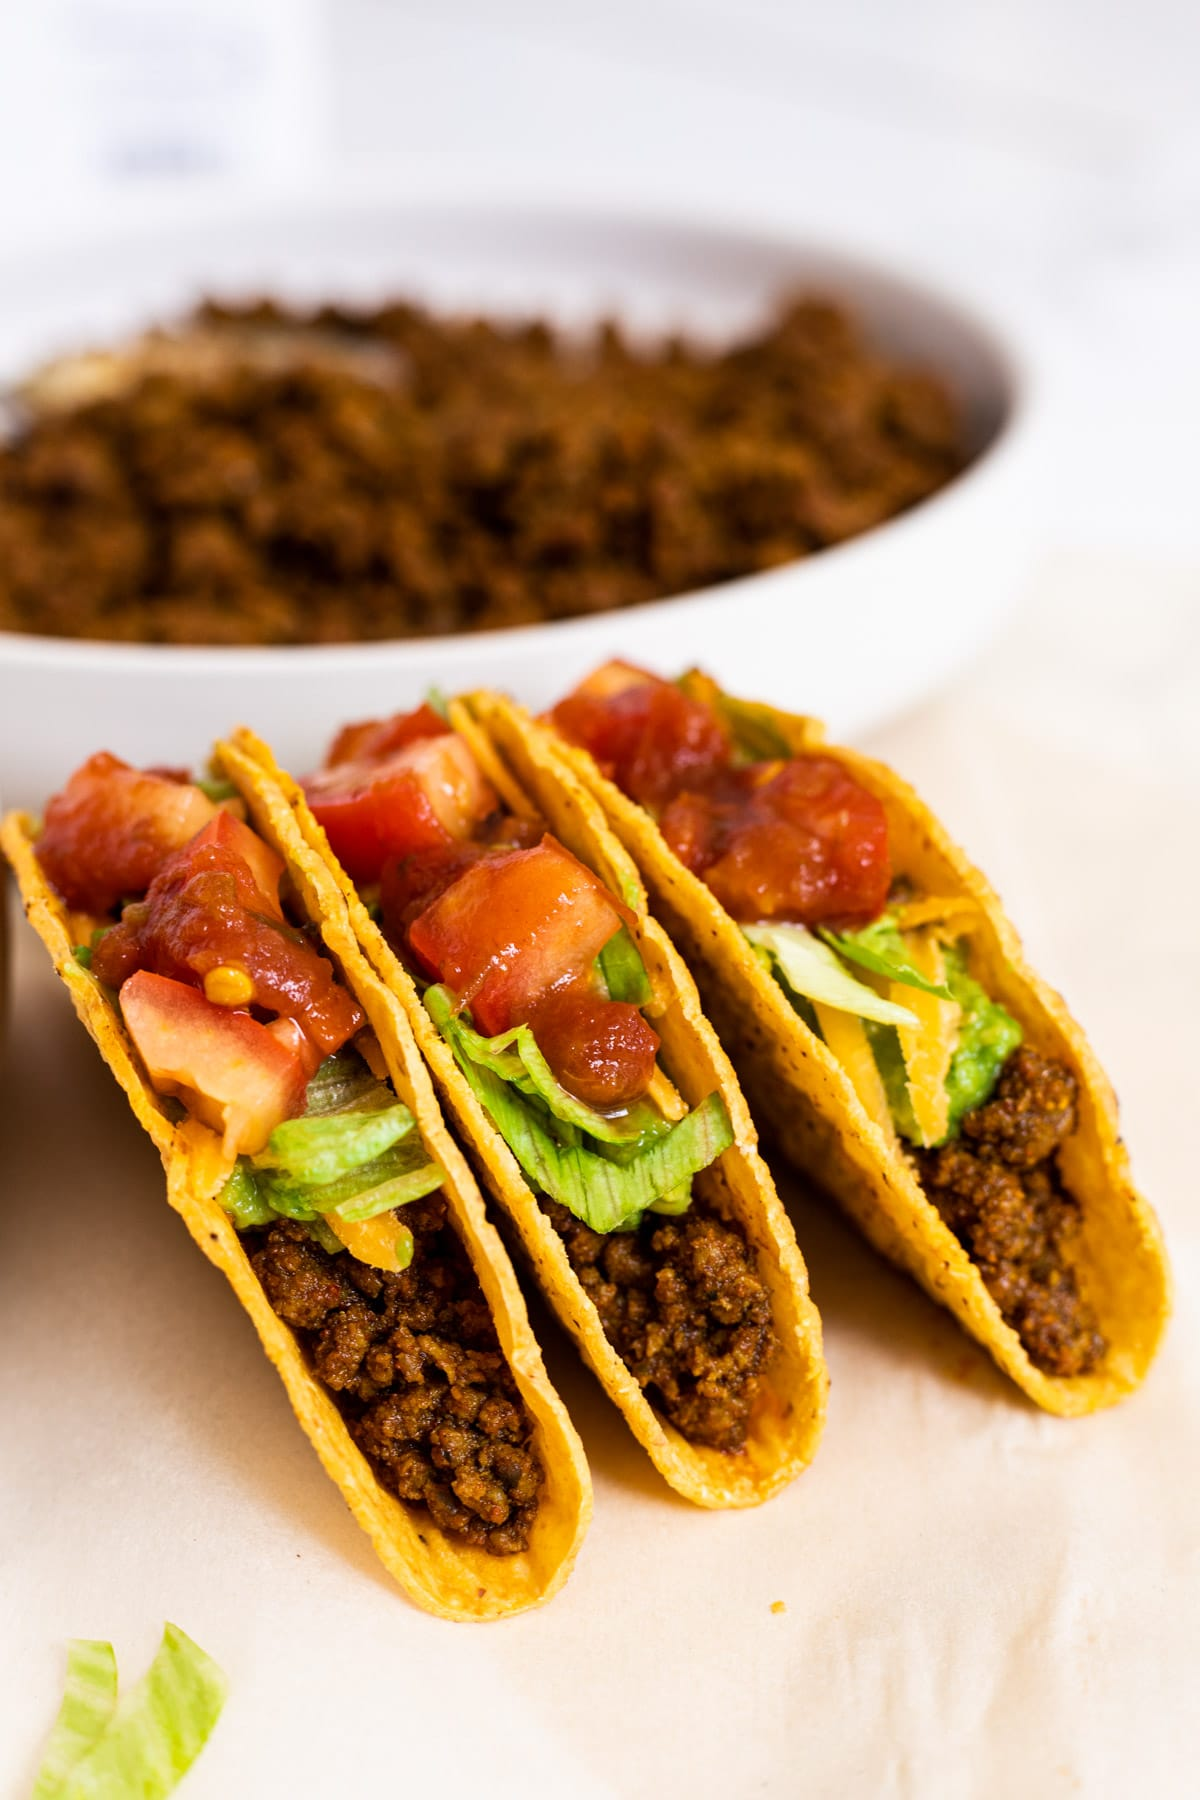 Three dressed beef tacos standing in front of a bowl of taco meat.